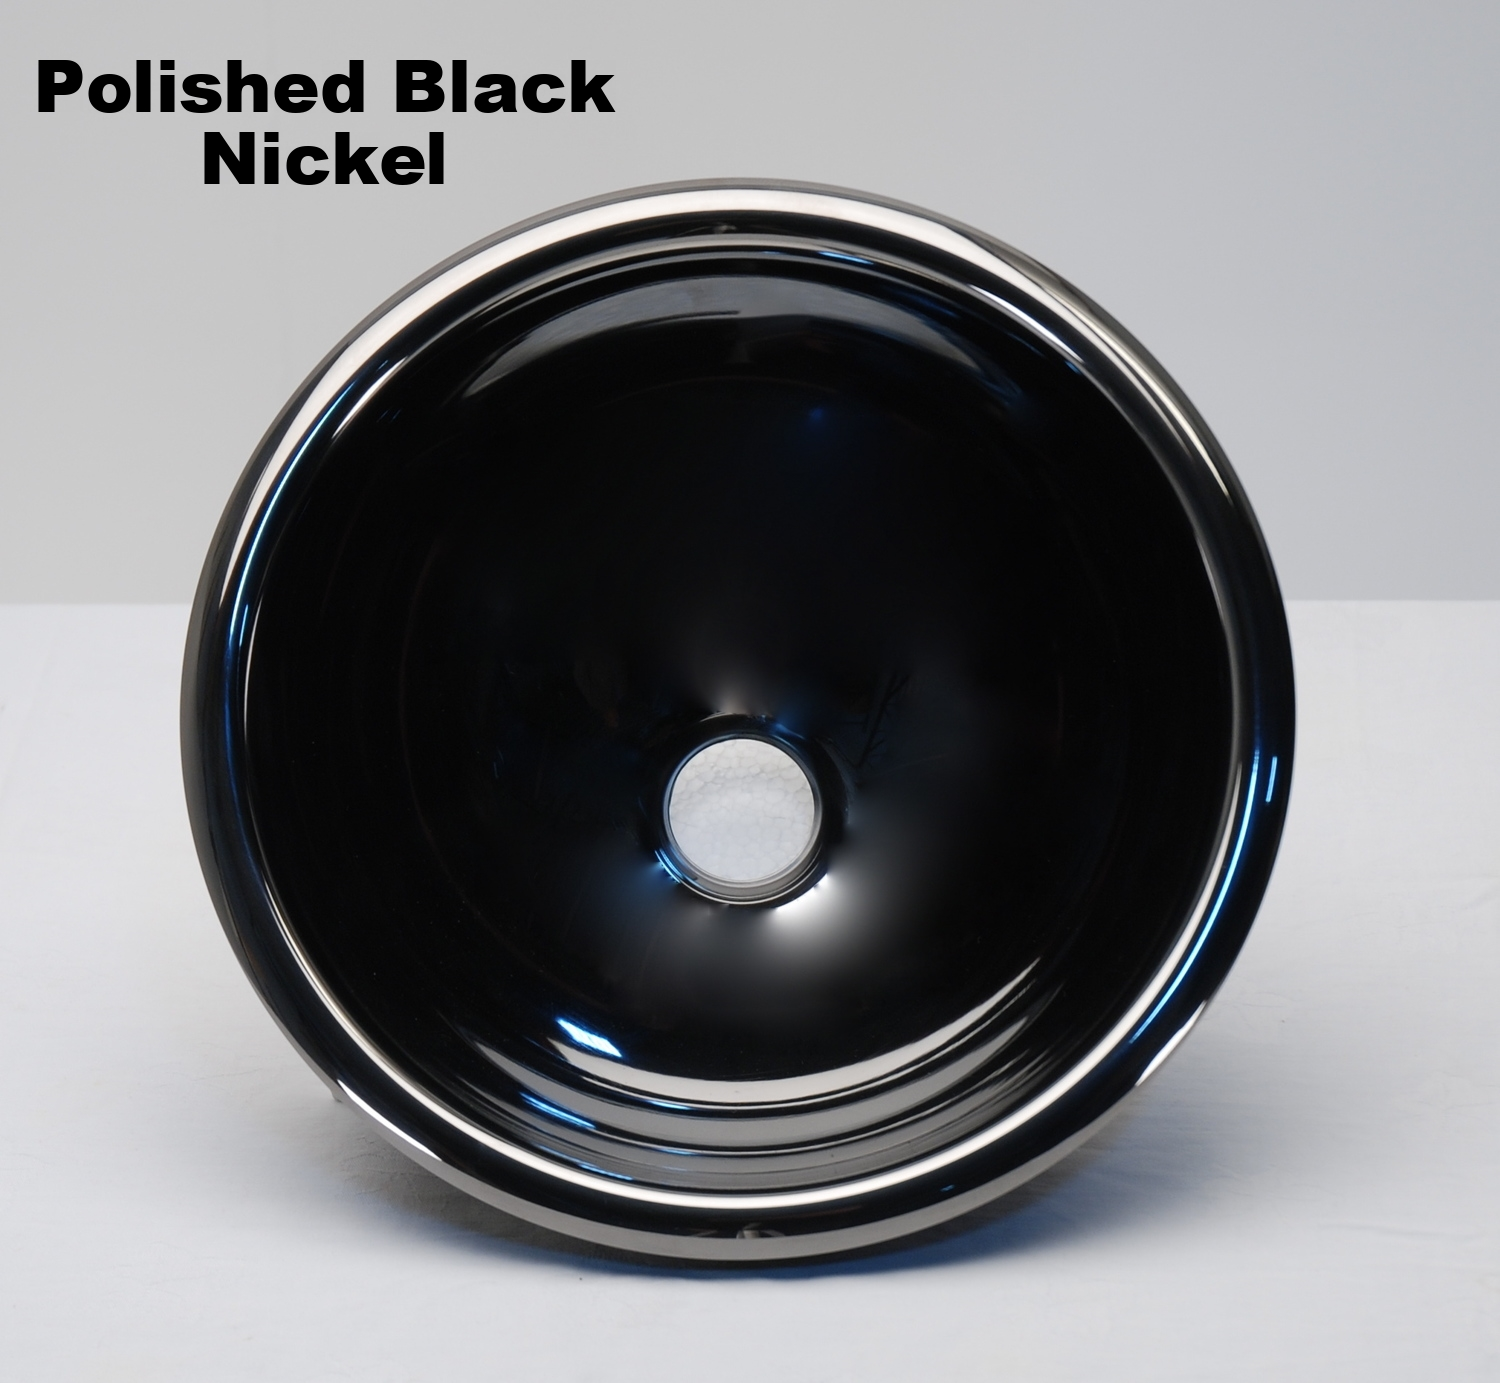 Polished Black Nickel